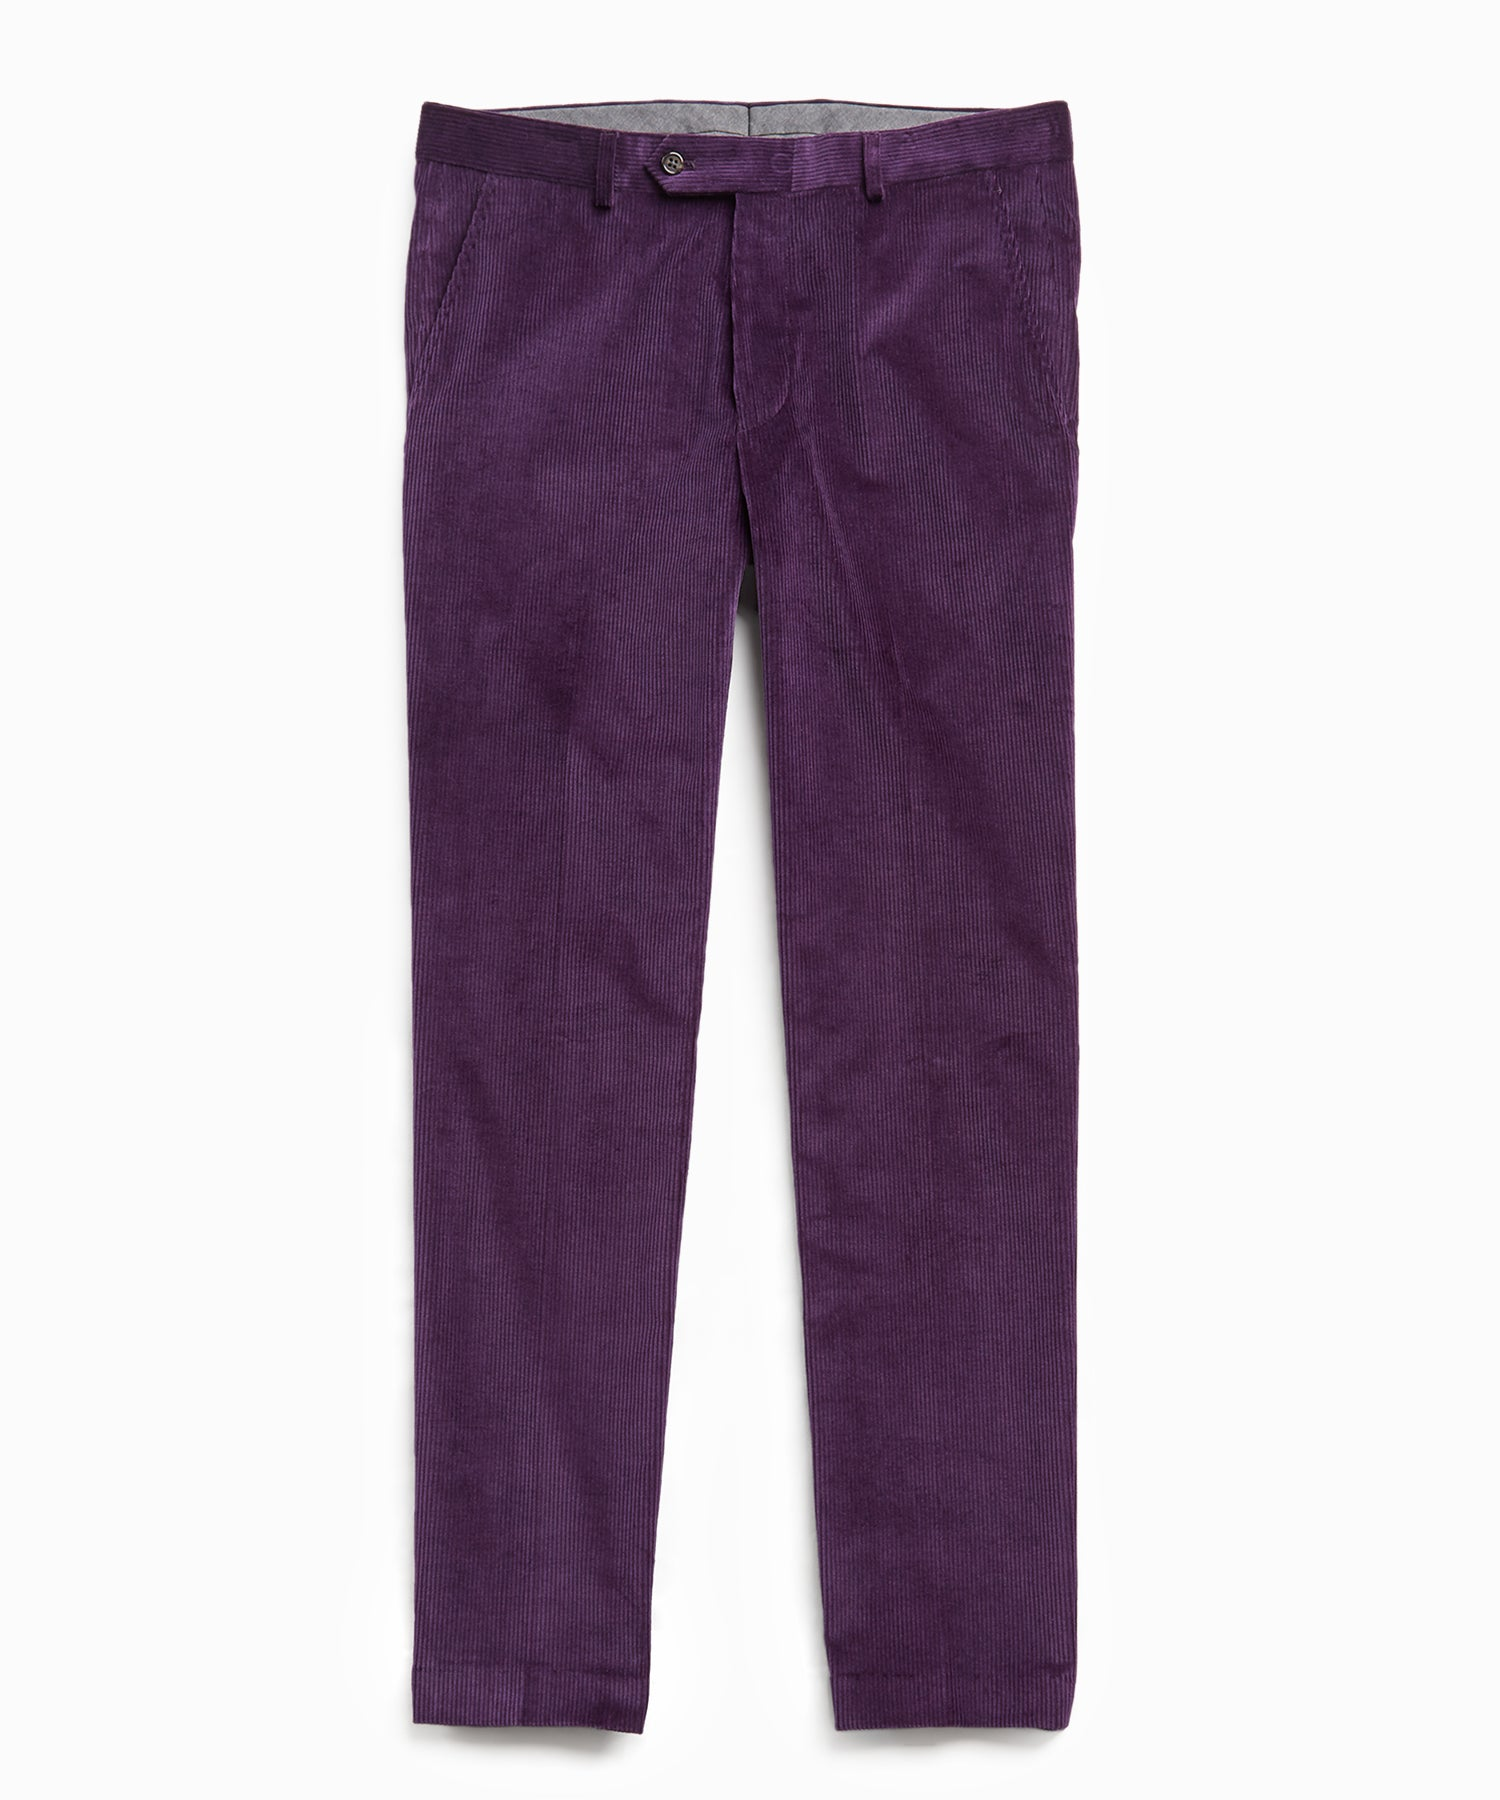 Sutton Corduroy Trouser in Purple